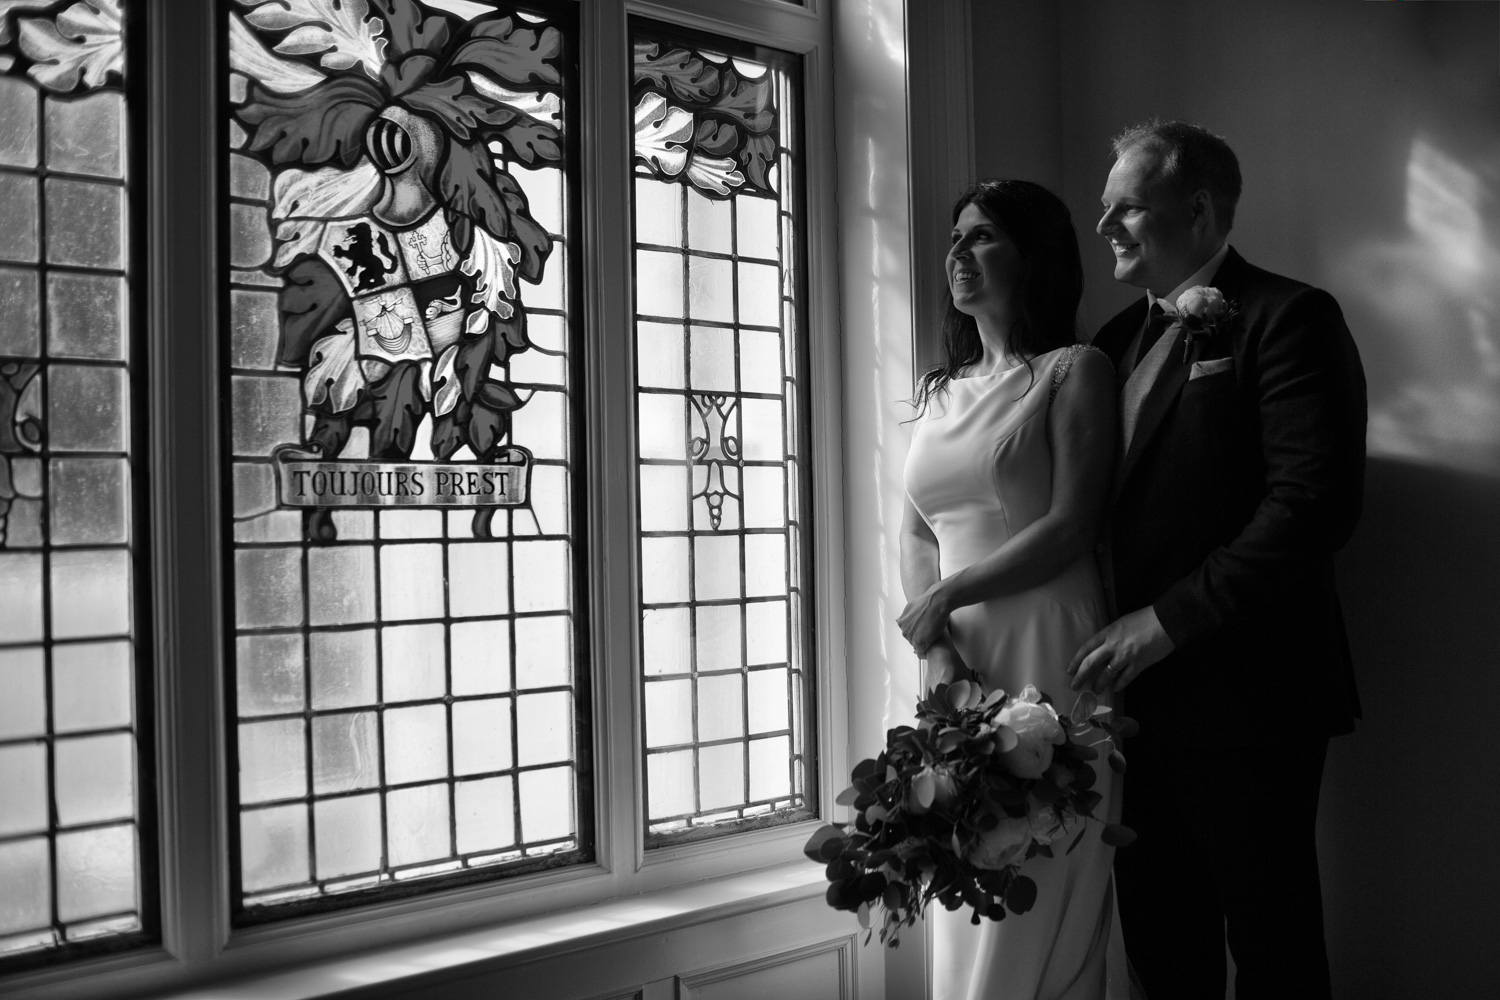 Mark_Barnes_Northern_Ireland_wedding_photographer_Kilmore_House_Wedding_photography_Kilmore_House_wedding_photographer-47.jpg